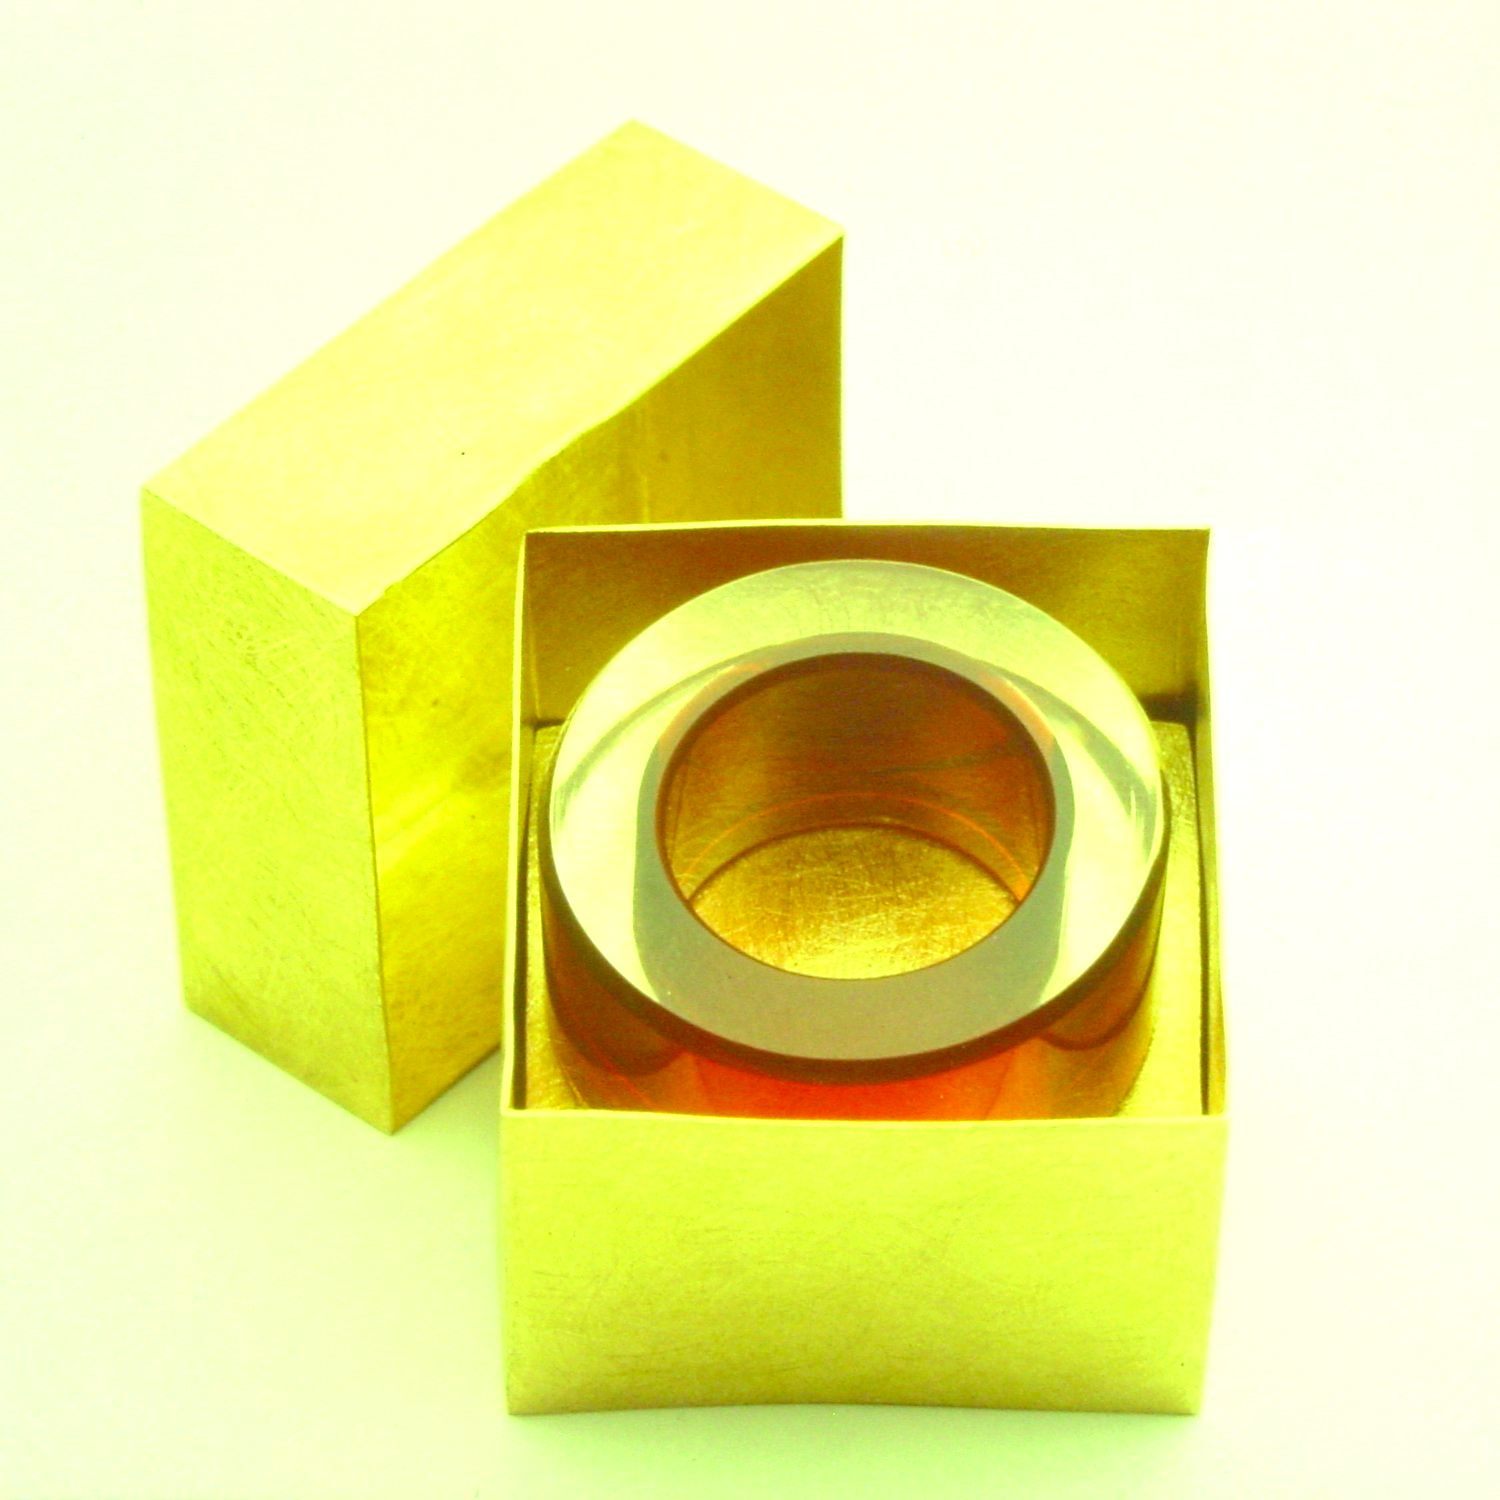 red ring in gold box